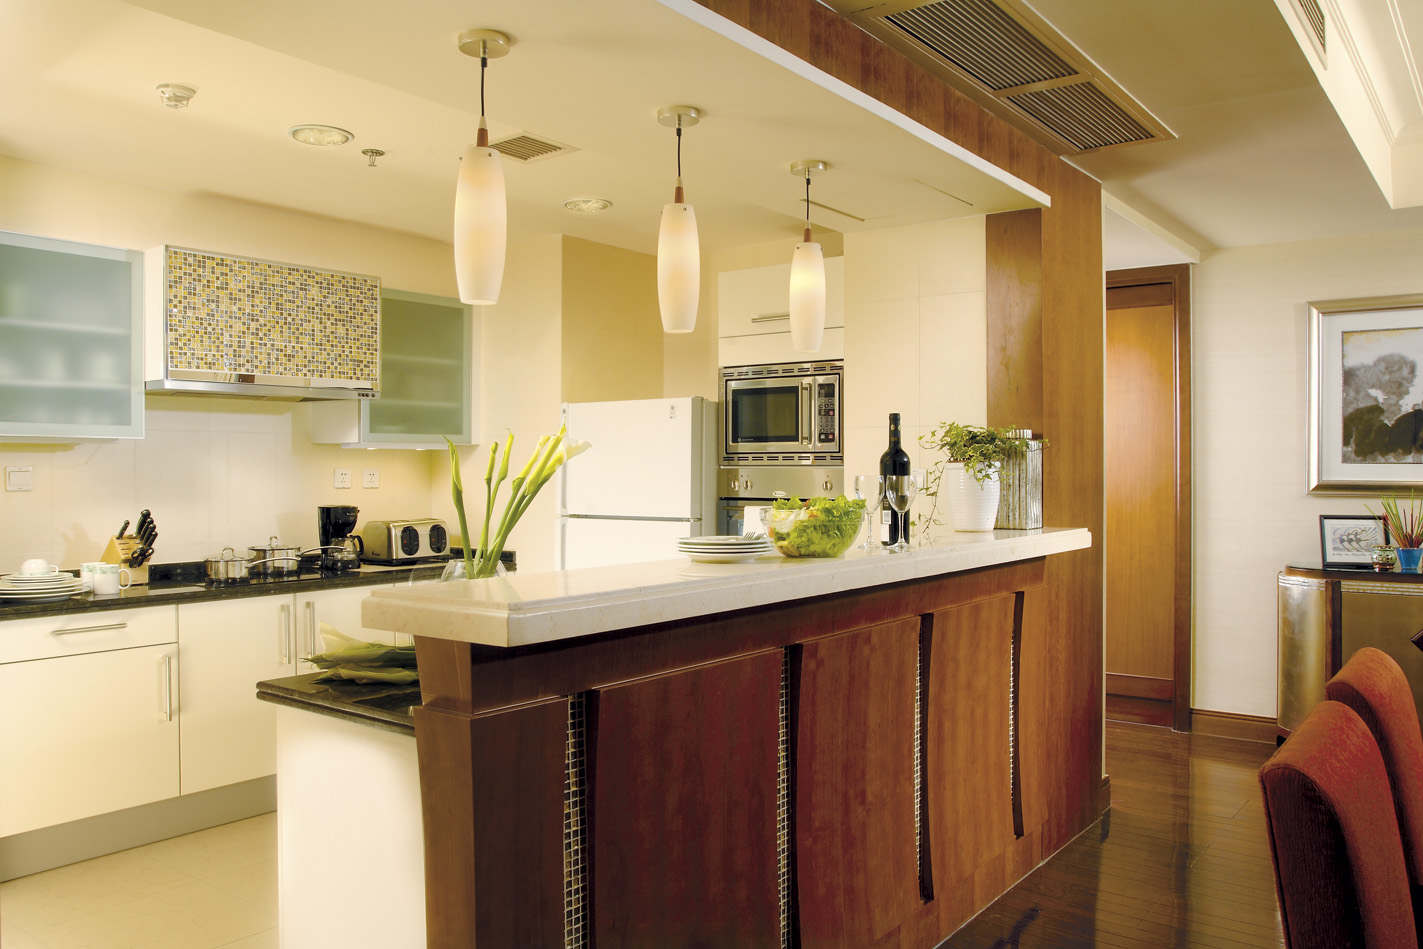 Open kitchens joy studio design gallery best design for Open kitchen designs photo gallery